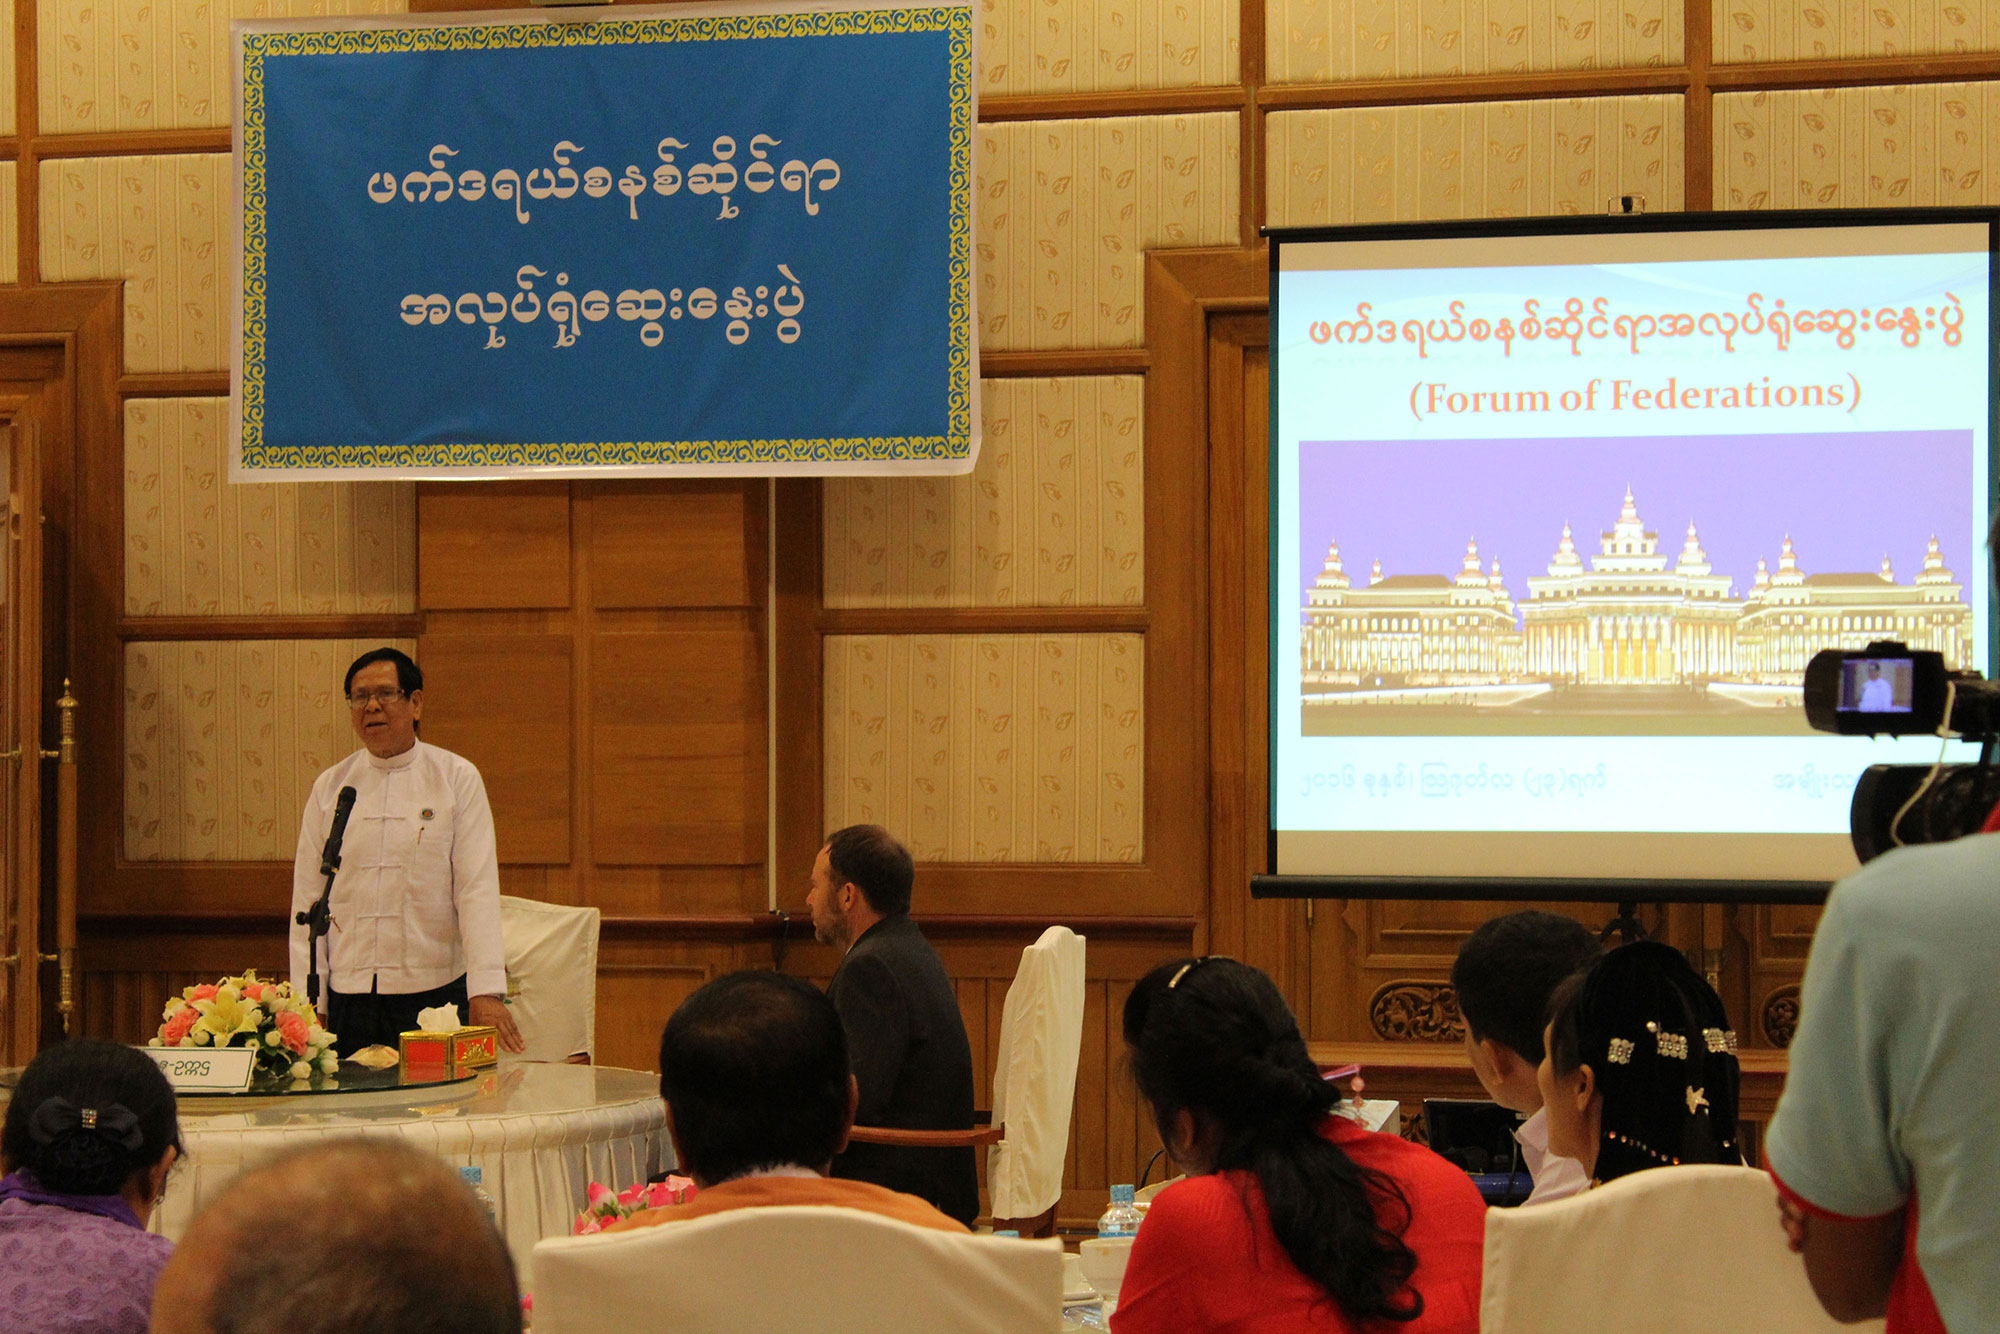 Opening Speech by H.E U Aye Thar Aung, the vice speaker of the Amyothar Hluttaw (upper house)